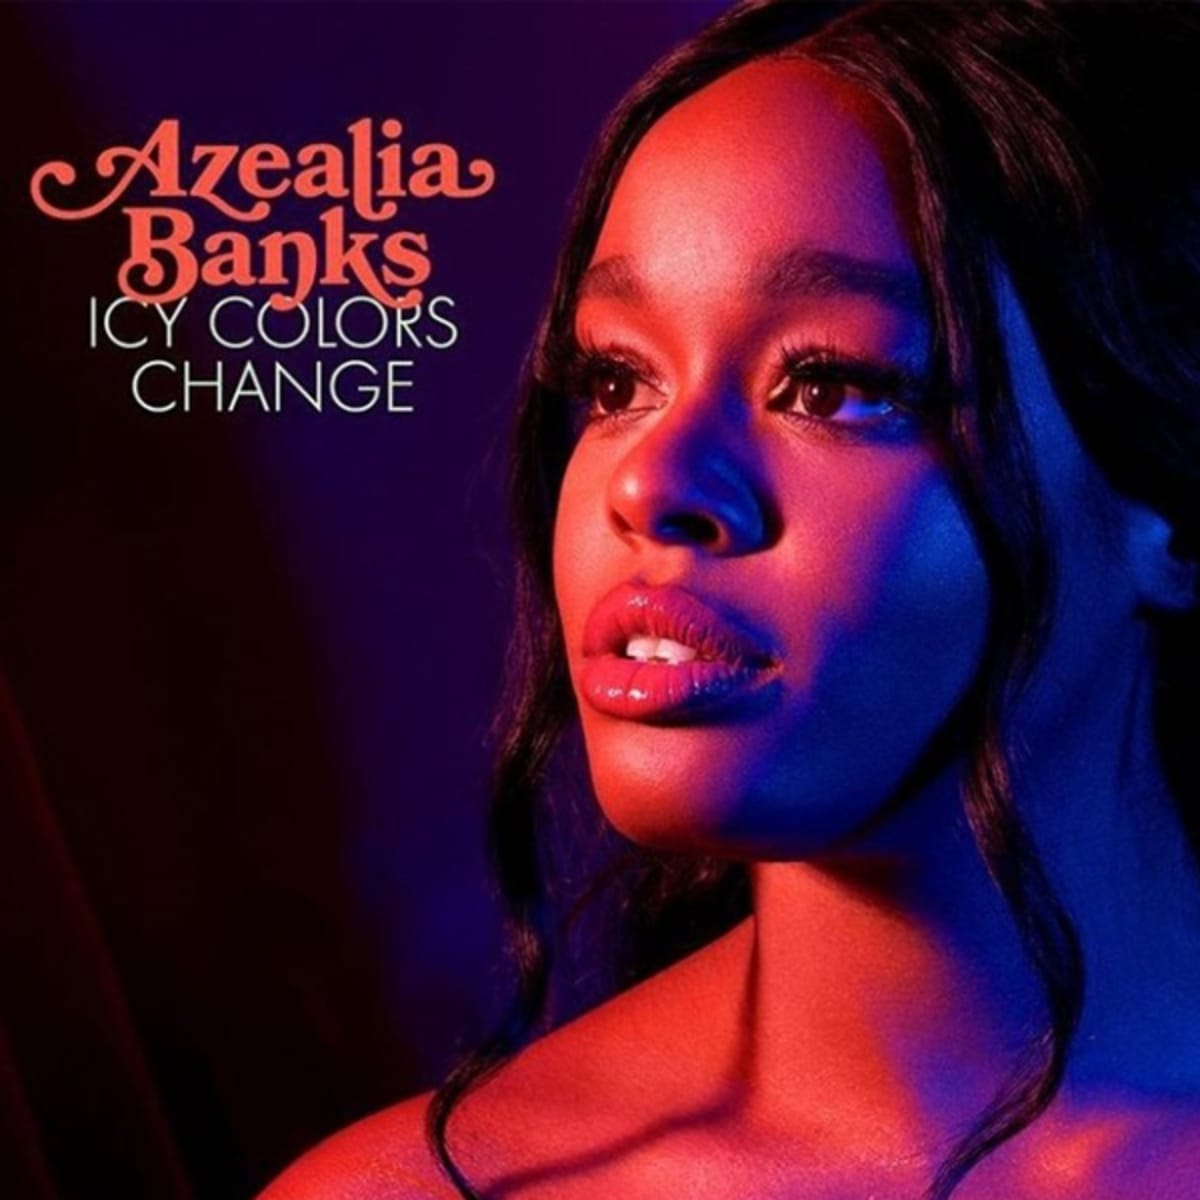 ICloud Azealia Banks naked (94 foto and video), Ass, Leaked, Feet, braless 2015